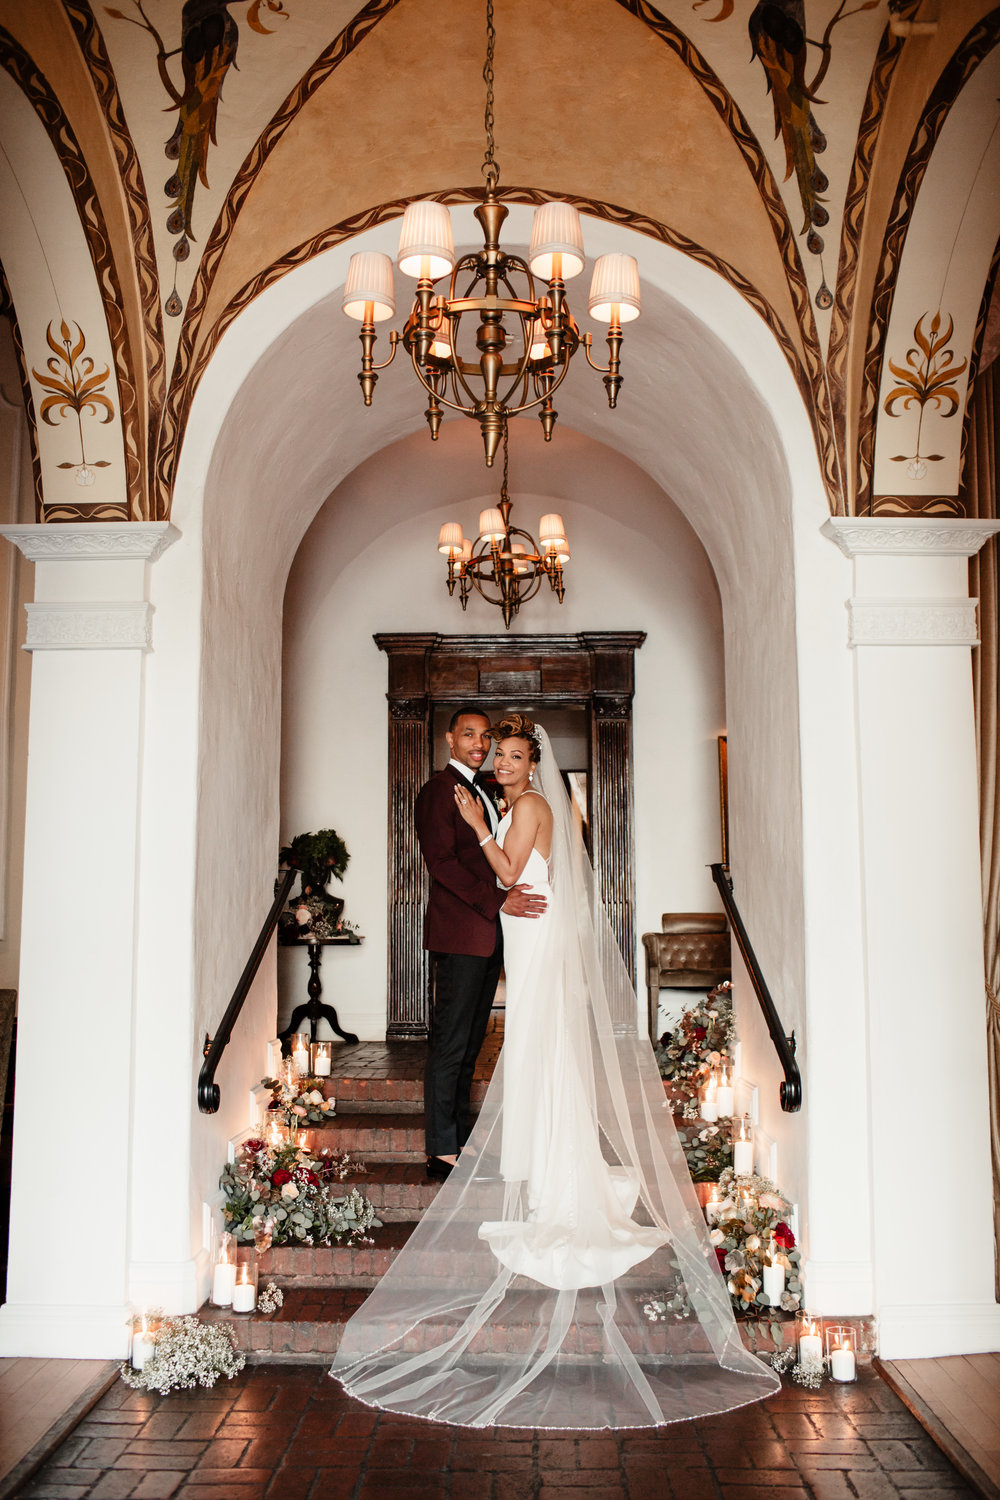 Zia and Zakee Carondelet House Wedding in Los Angeles - Eve Rox Photography-99.jpg